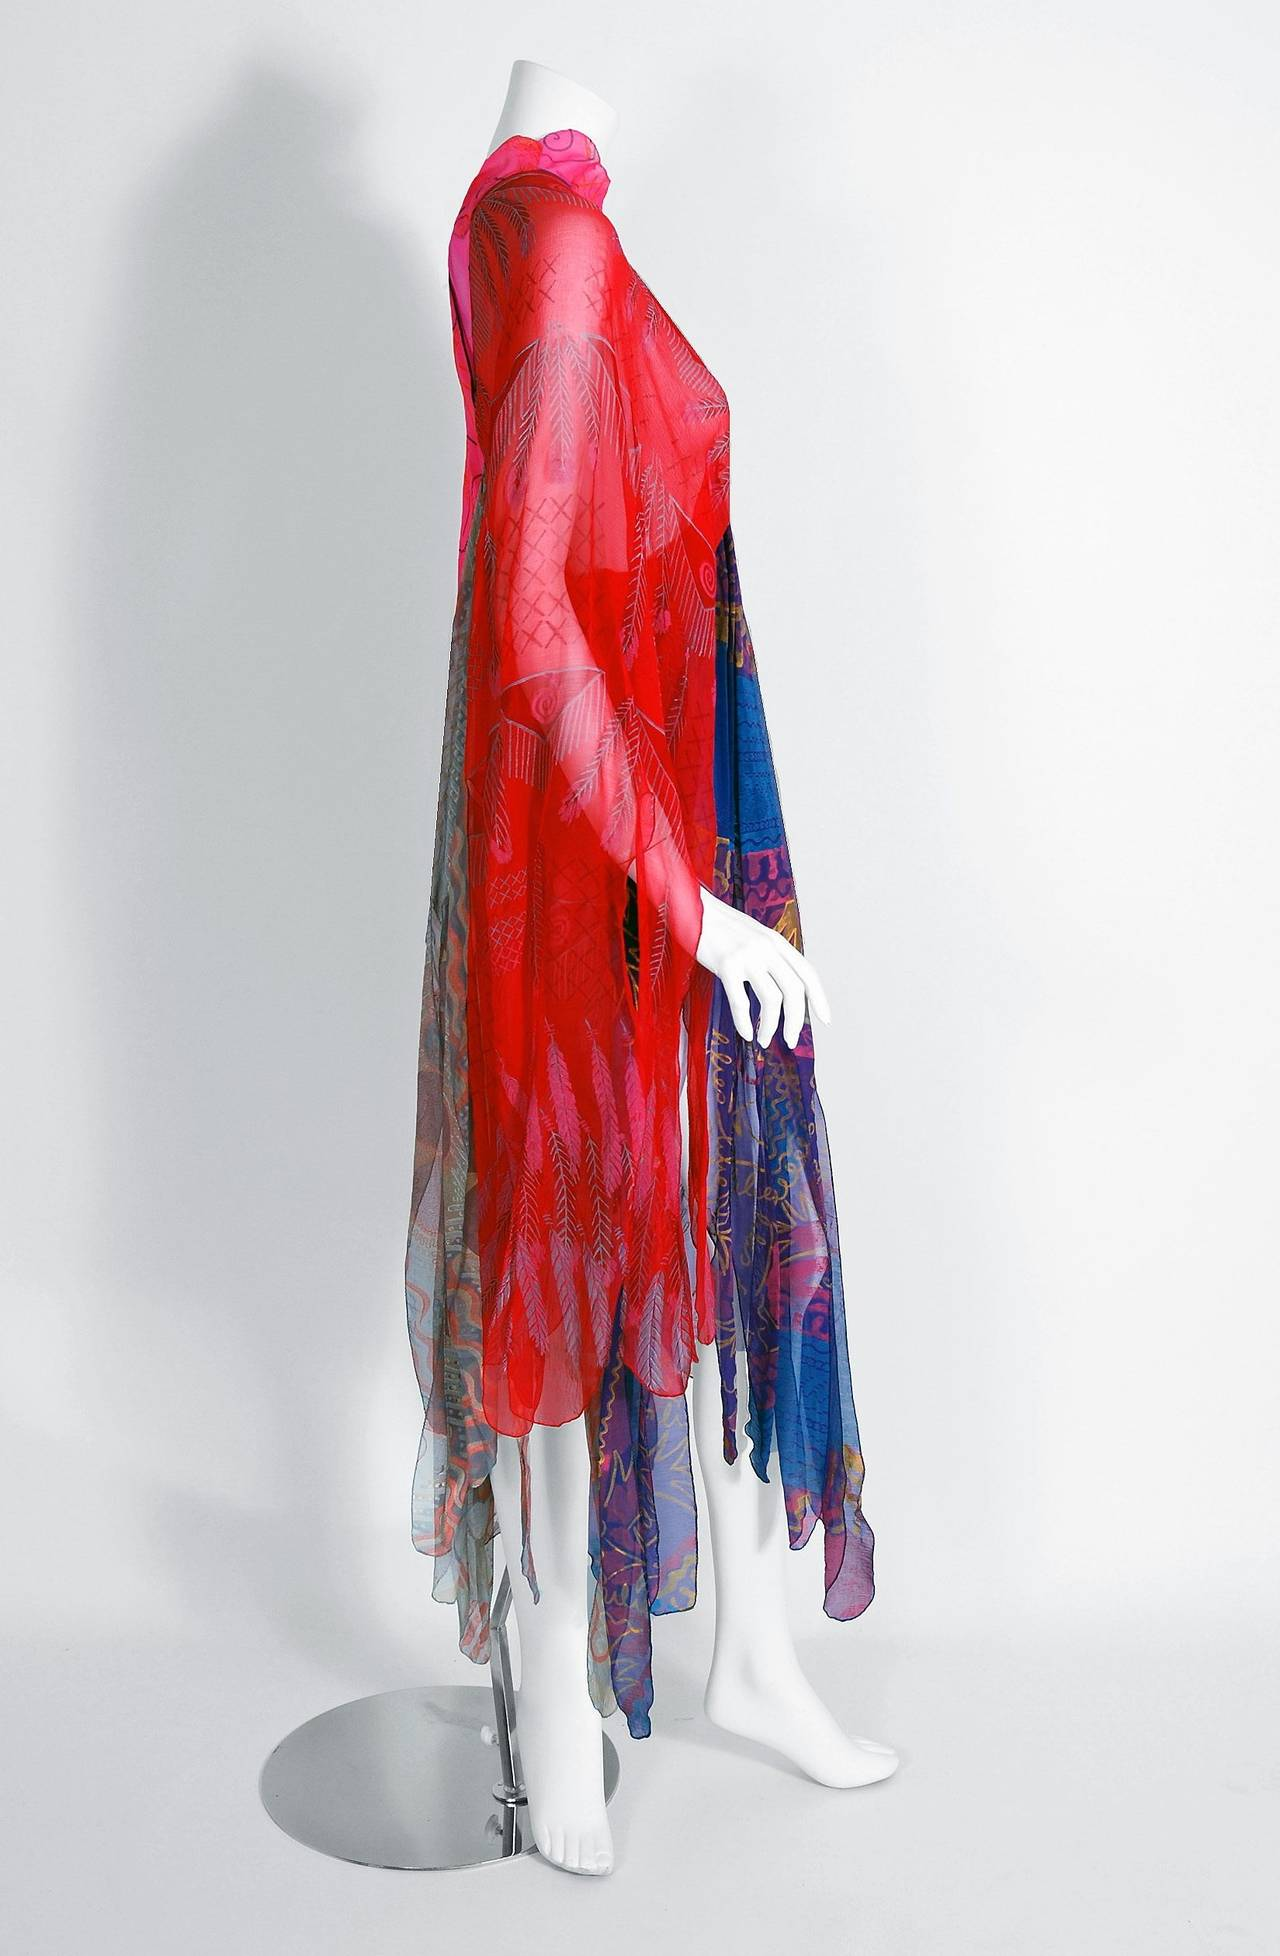 1972 Zandra Rhodes Hand-Painted Indian Feathers & Lillies Silk Caftan Dress In Excellent Condition For Sale In Beverly Hills, CA